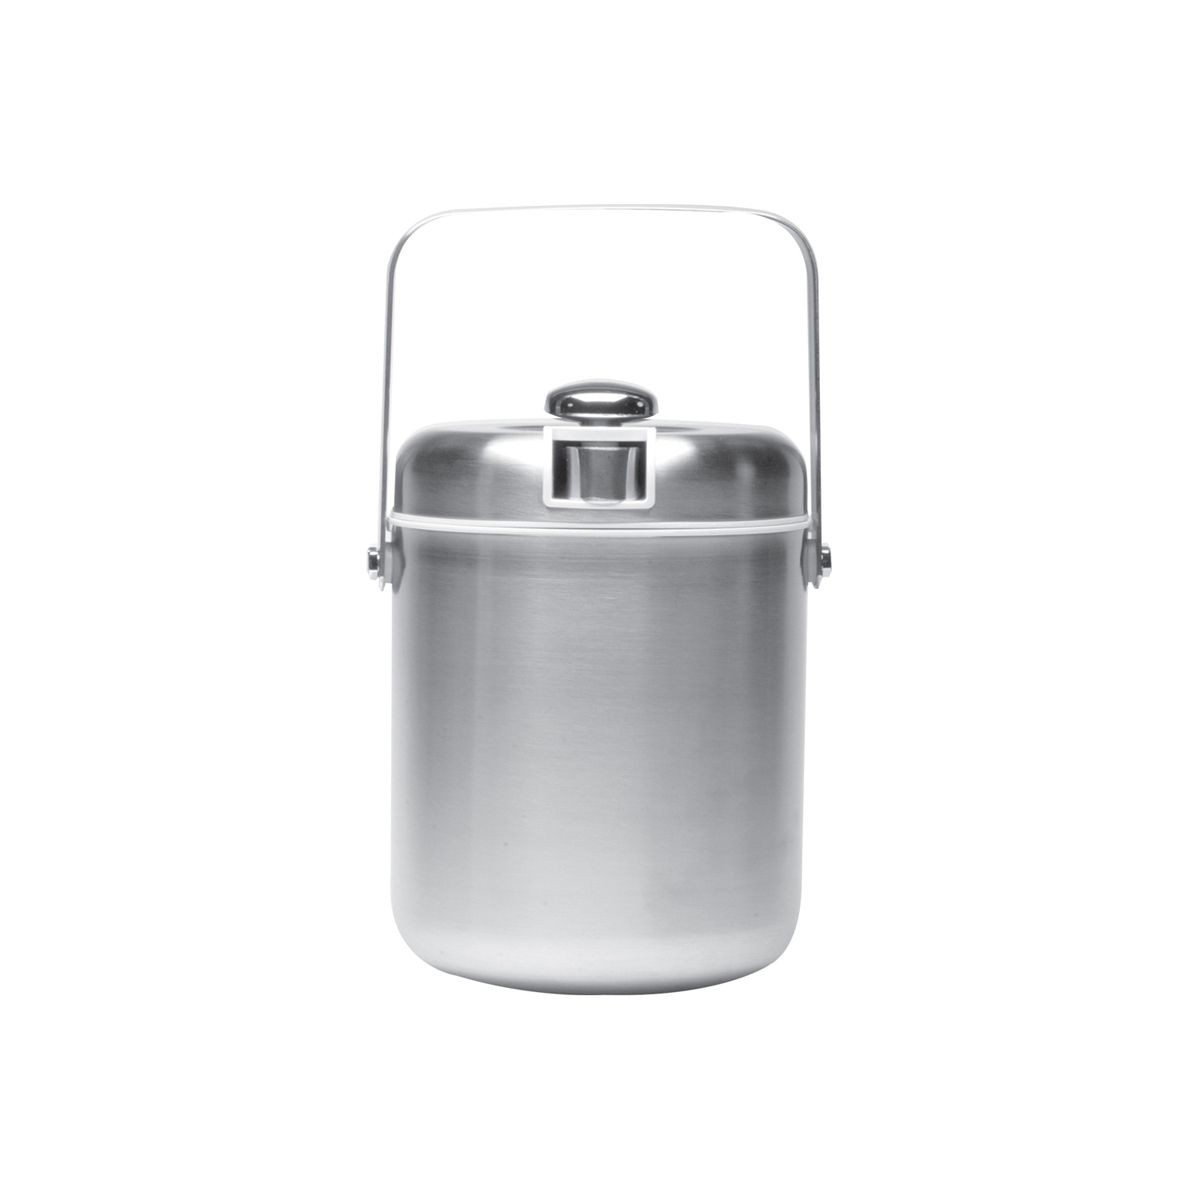 Service Ideas IBT15BS Ice Bucket with Tongs, White Interior 1.5 Liter